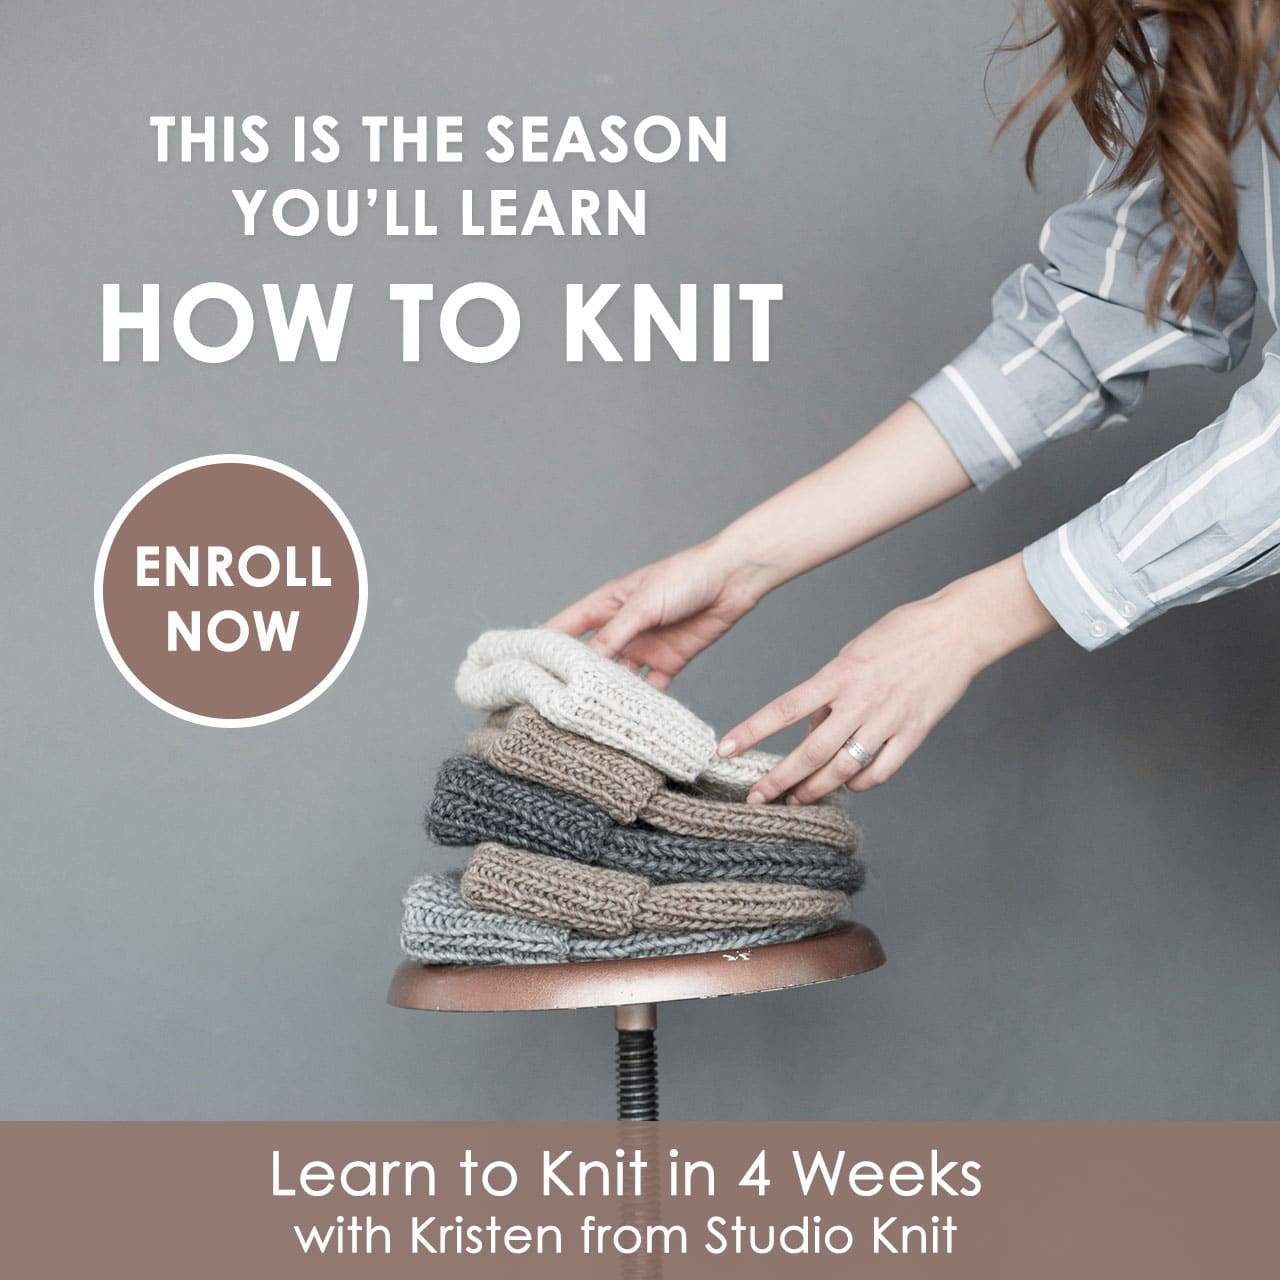 This is the Season I'll Learn How to Knit with the Absolute Beginner Knitting Series by Kristen from Studio Knit